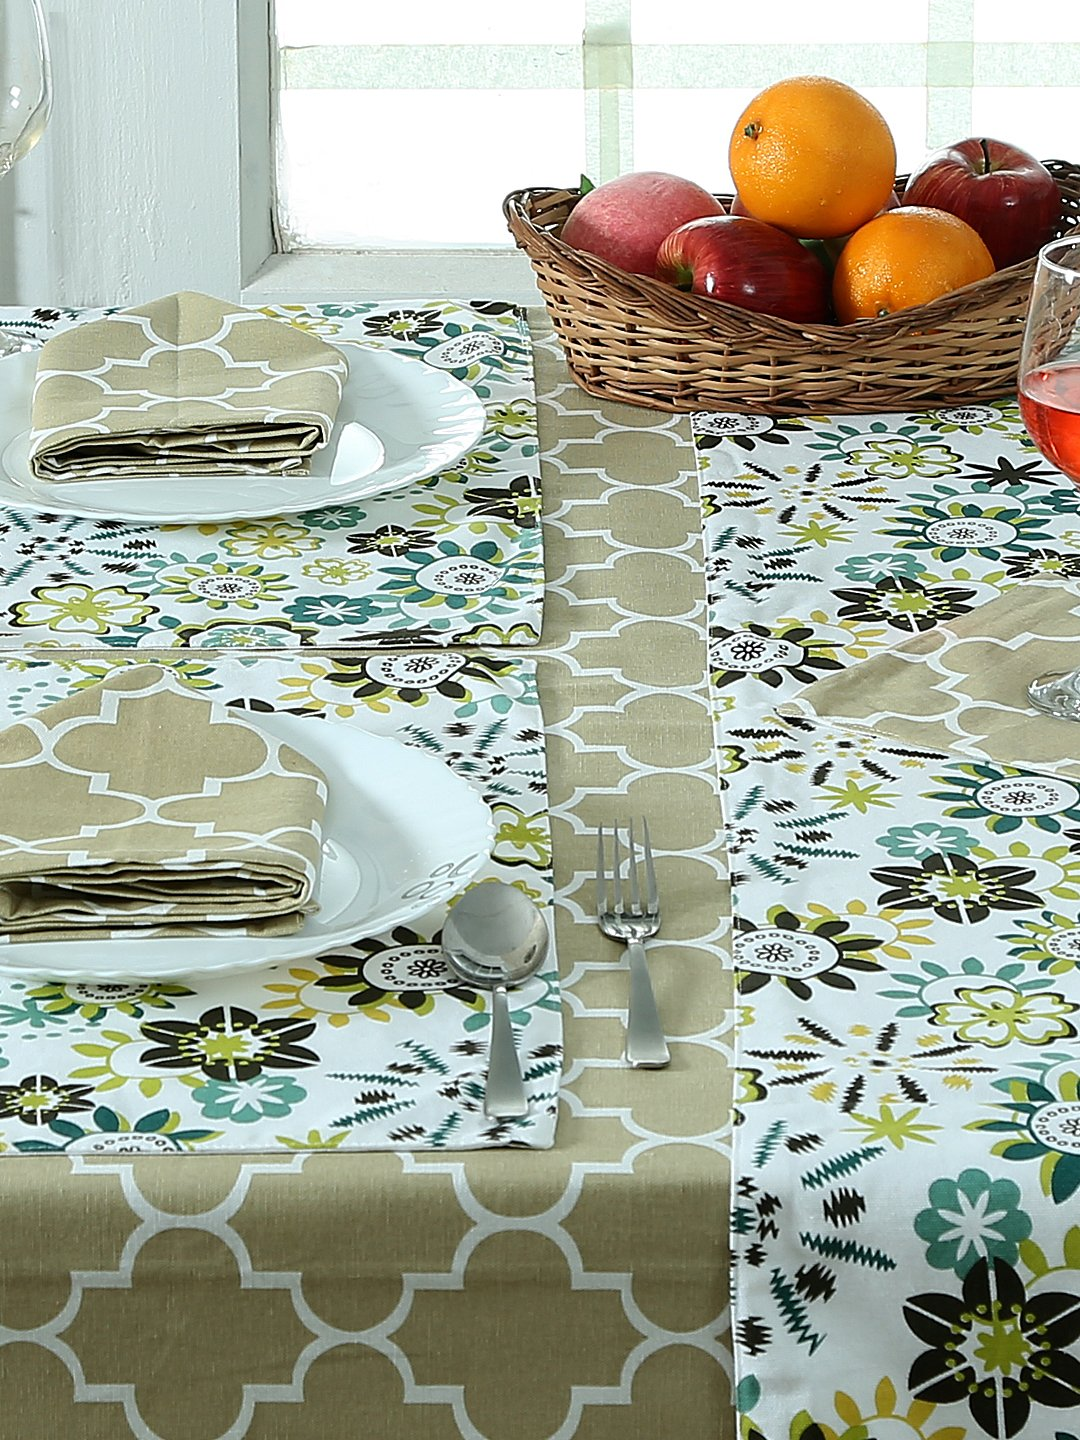 Handcrafted Persian Green Set of Table Linen (16 Pcs)